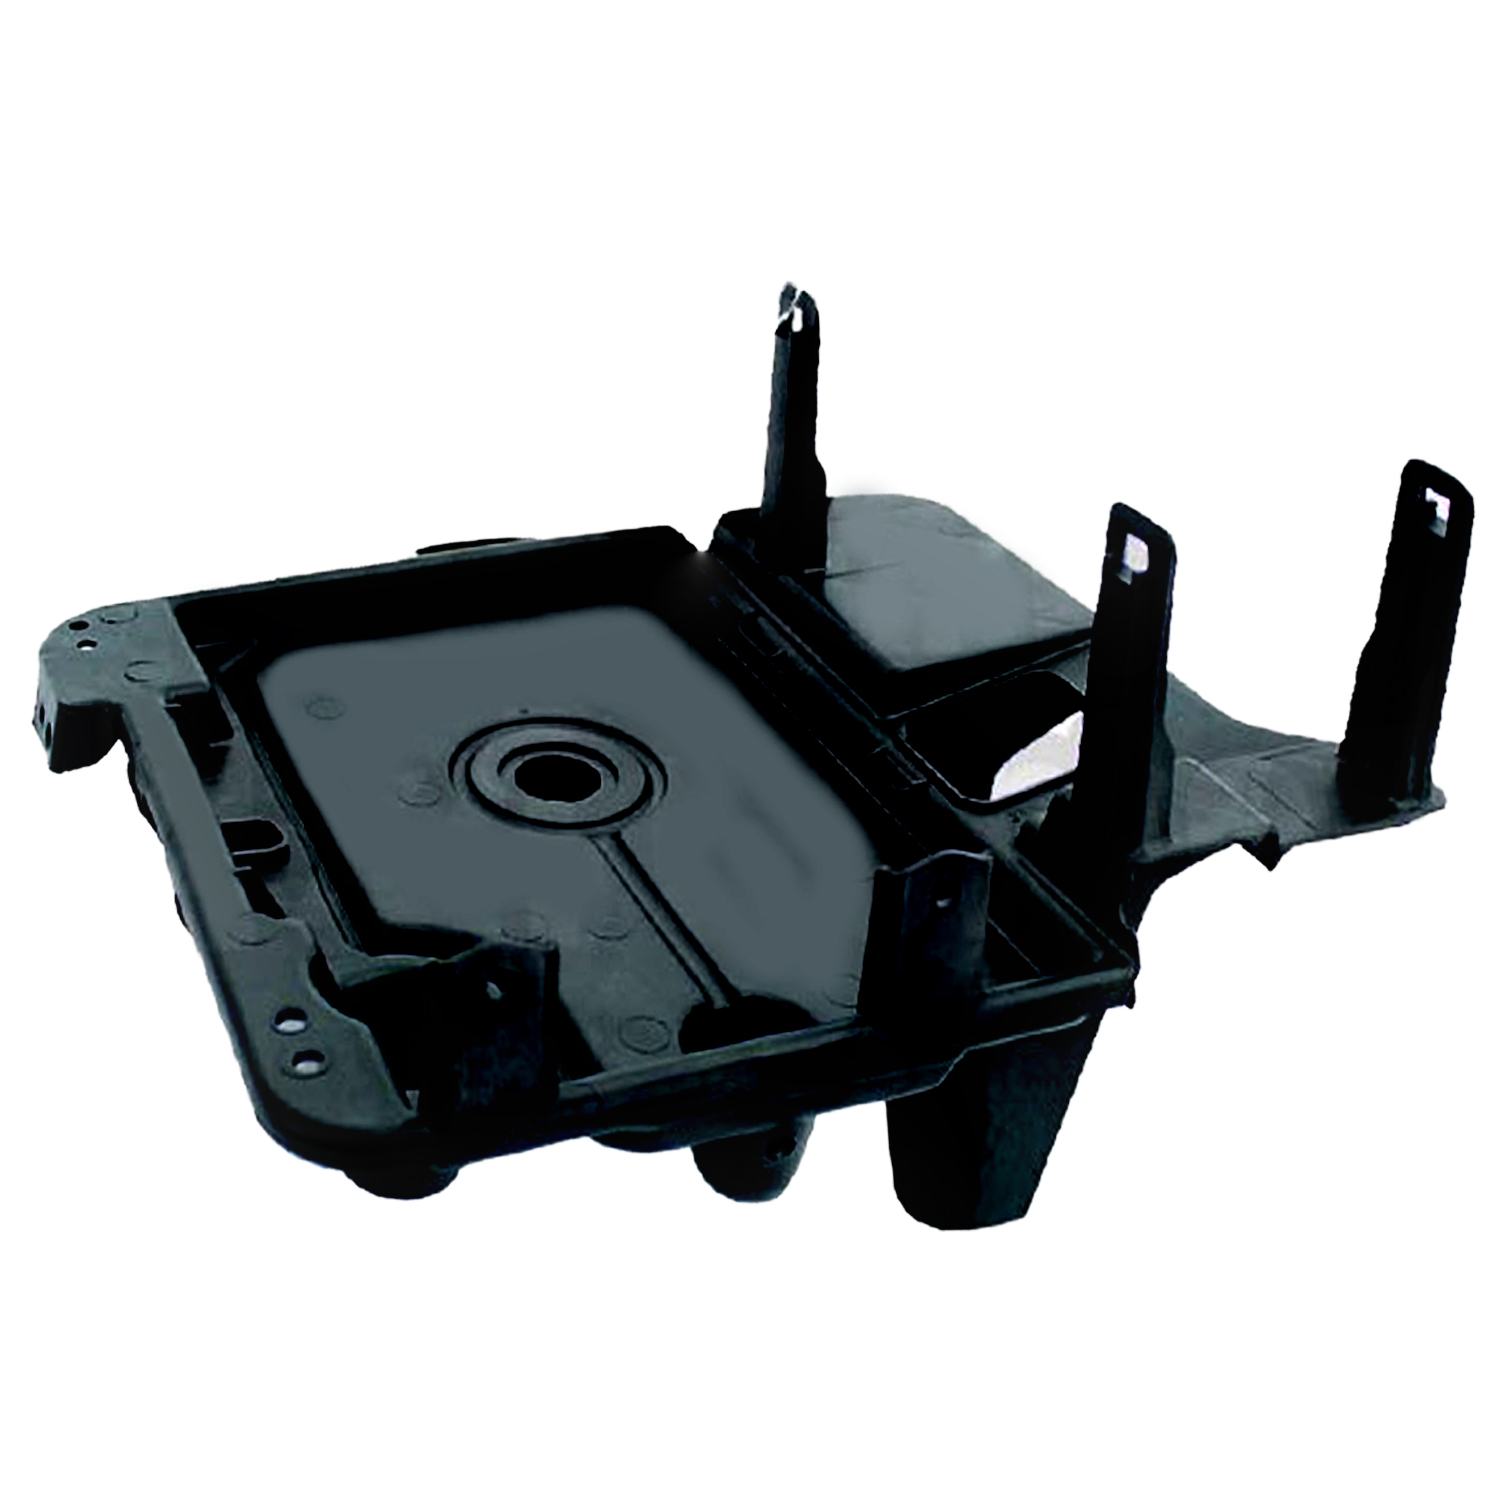 Universal Cam Gear Holder together with Jeepcherokee Liberty also Jeepcherokee Liberty besides Jeep Cherokee Liberty furthermore Fuel Future Z B Toyota Rav L Binternal  bustion Engine View. on 2005 jeep liberty crd